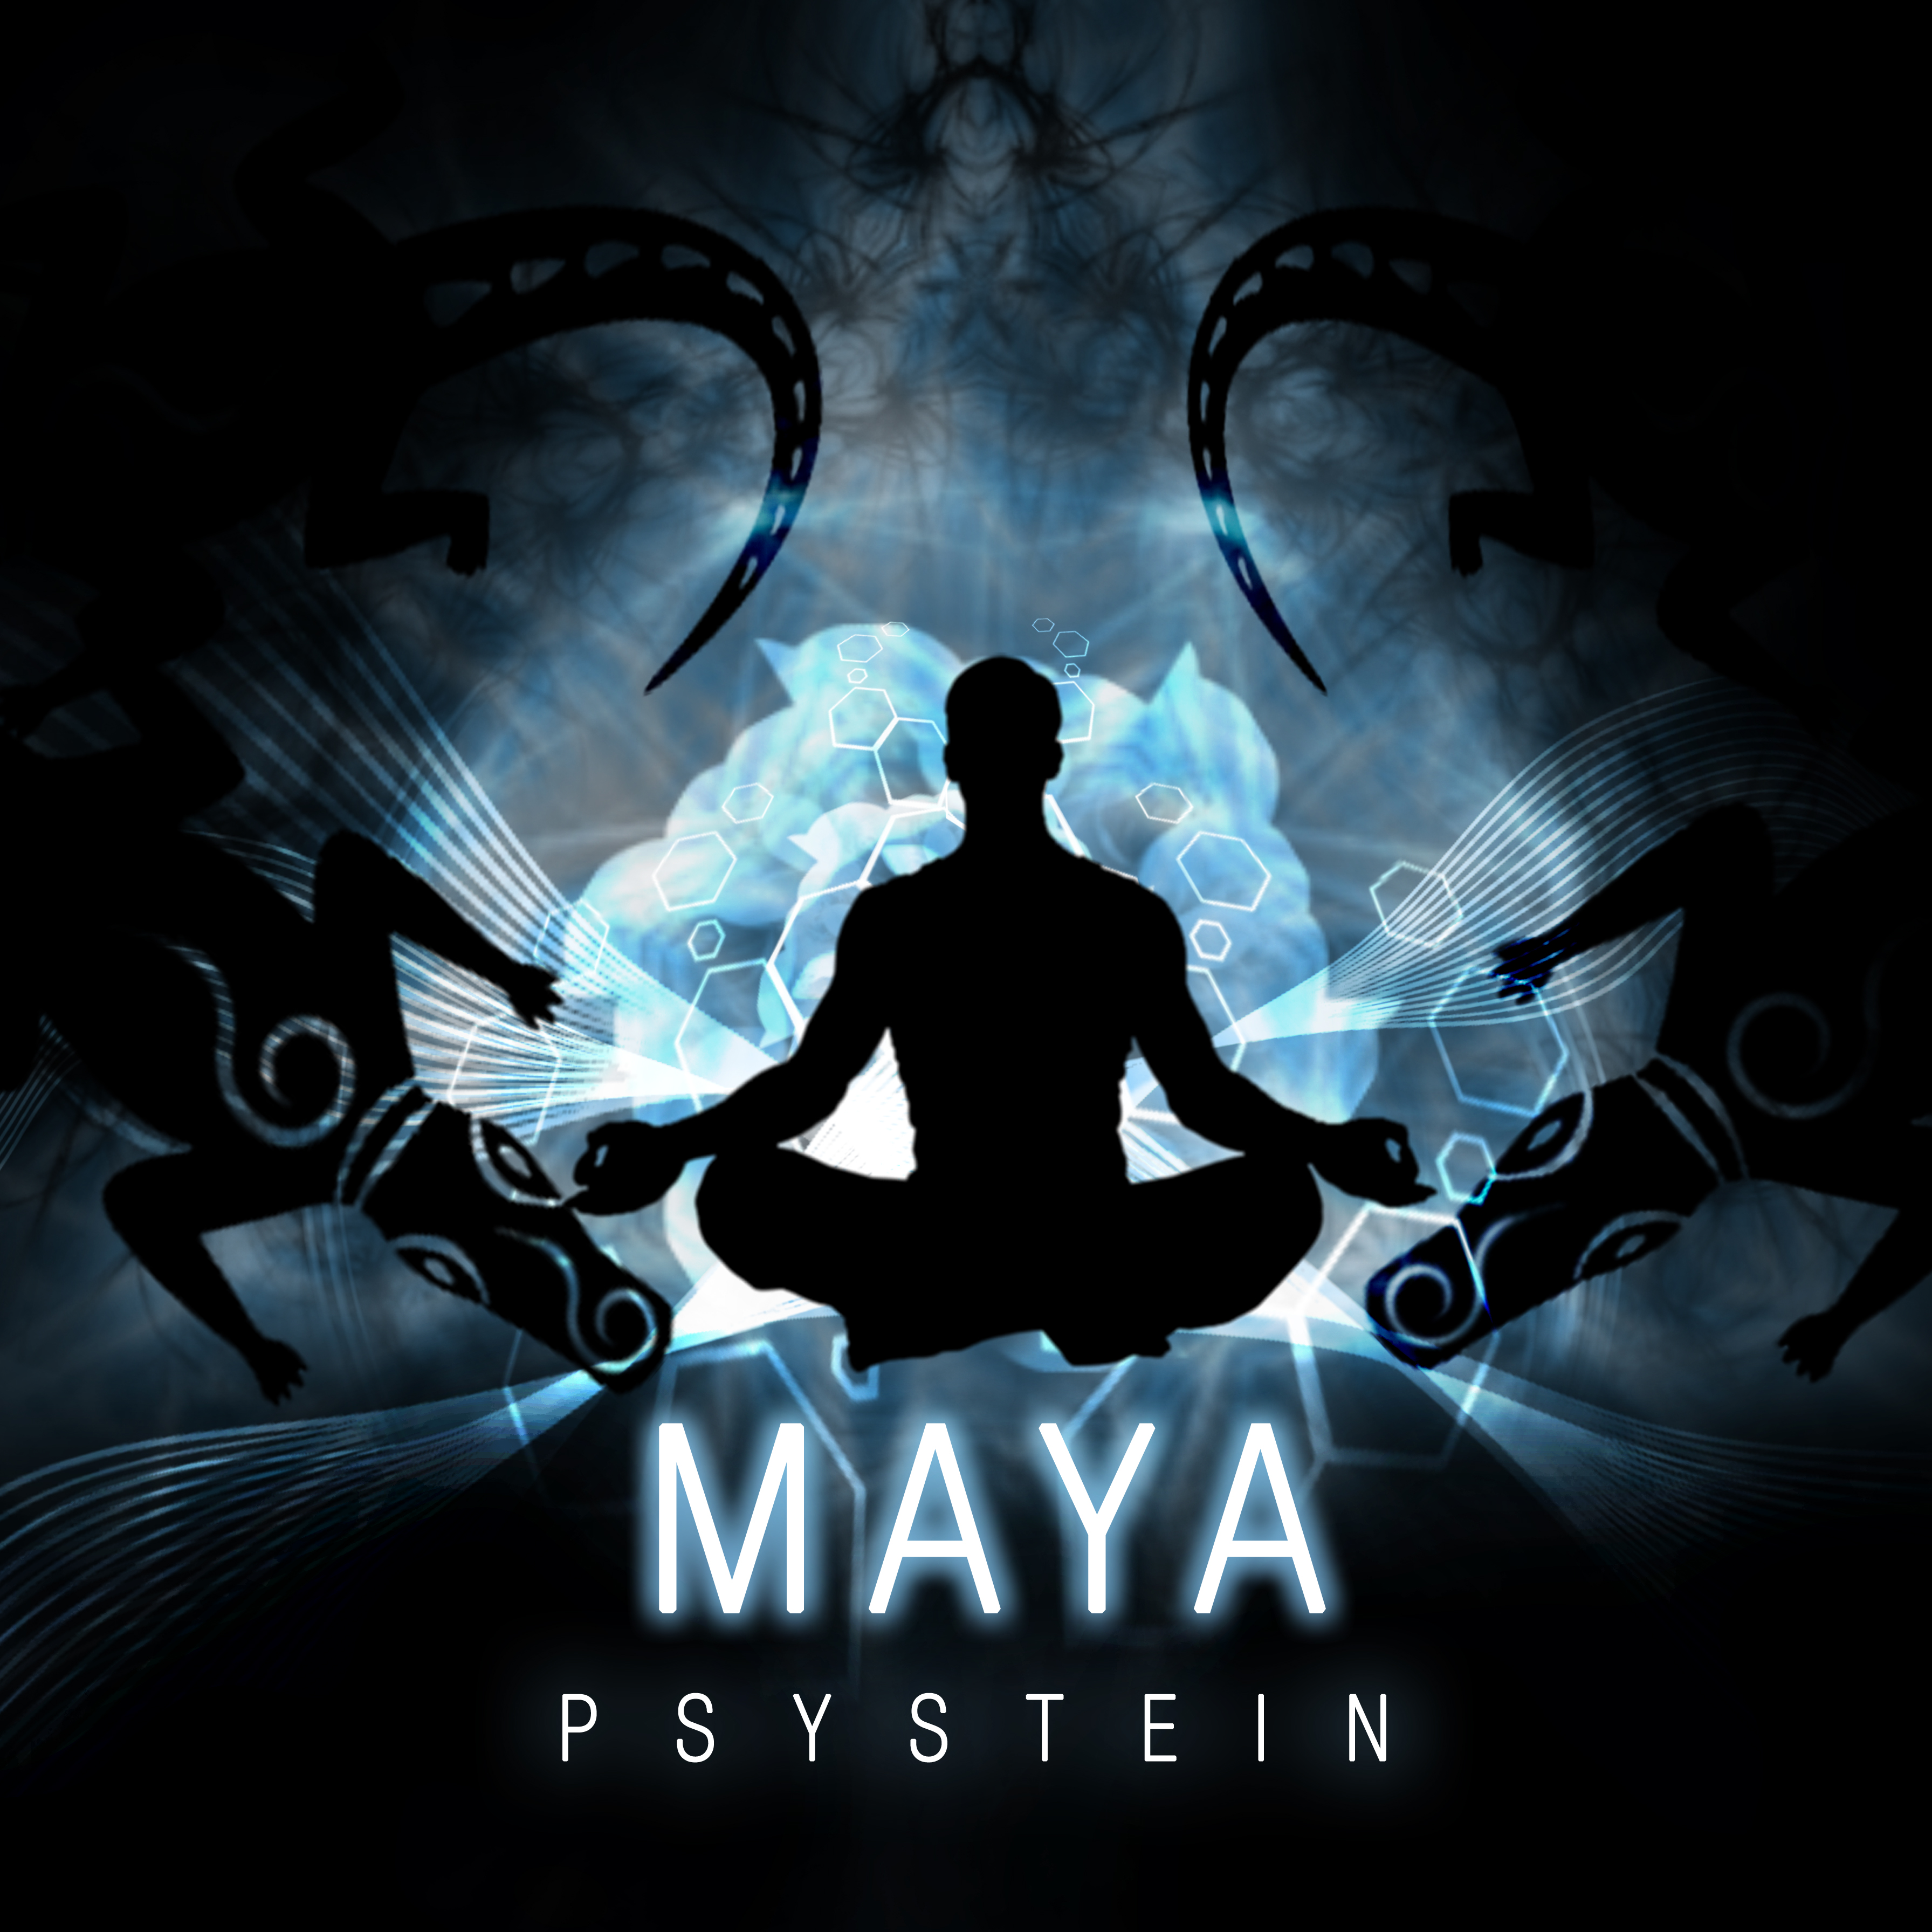 Psystein - Maya